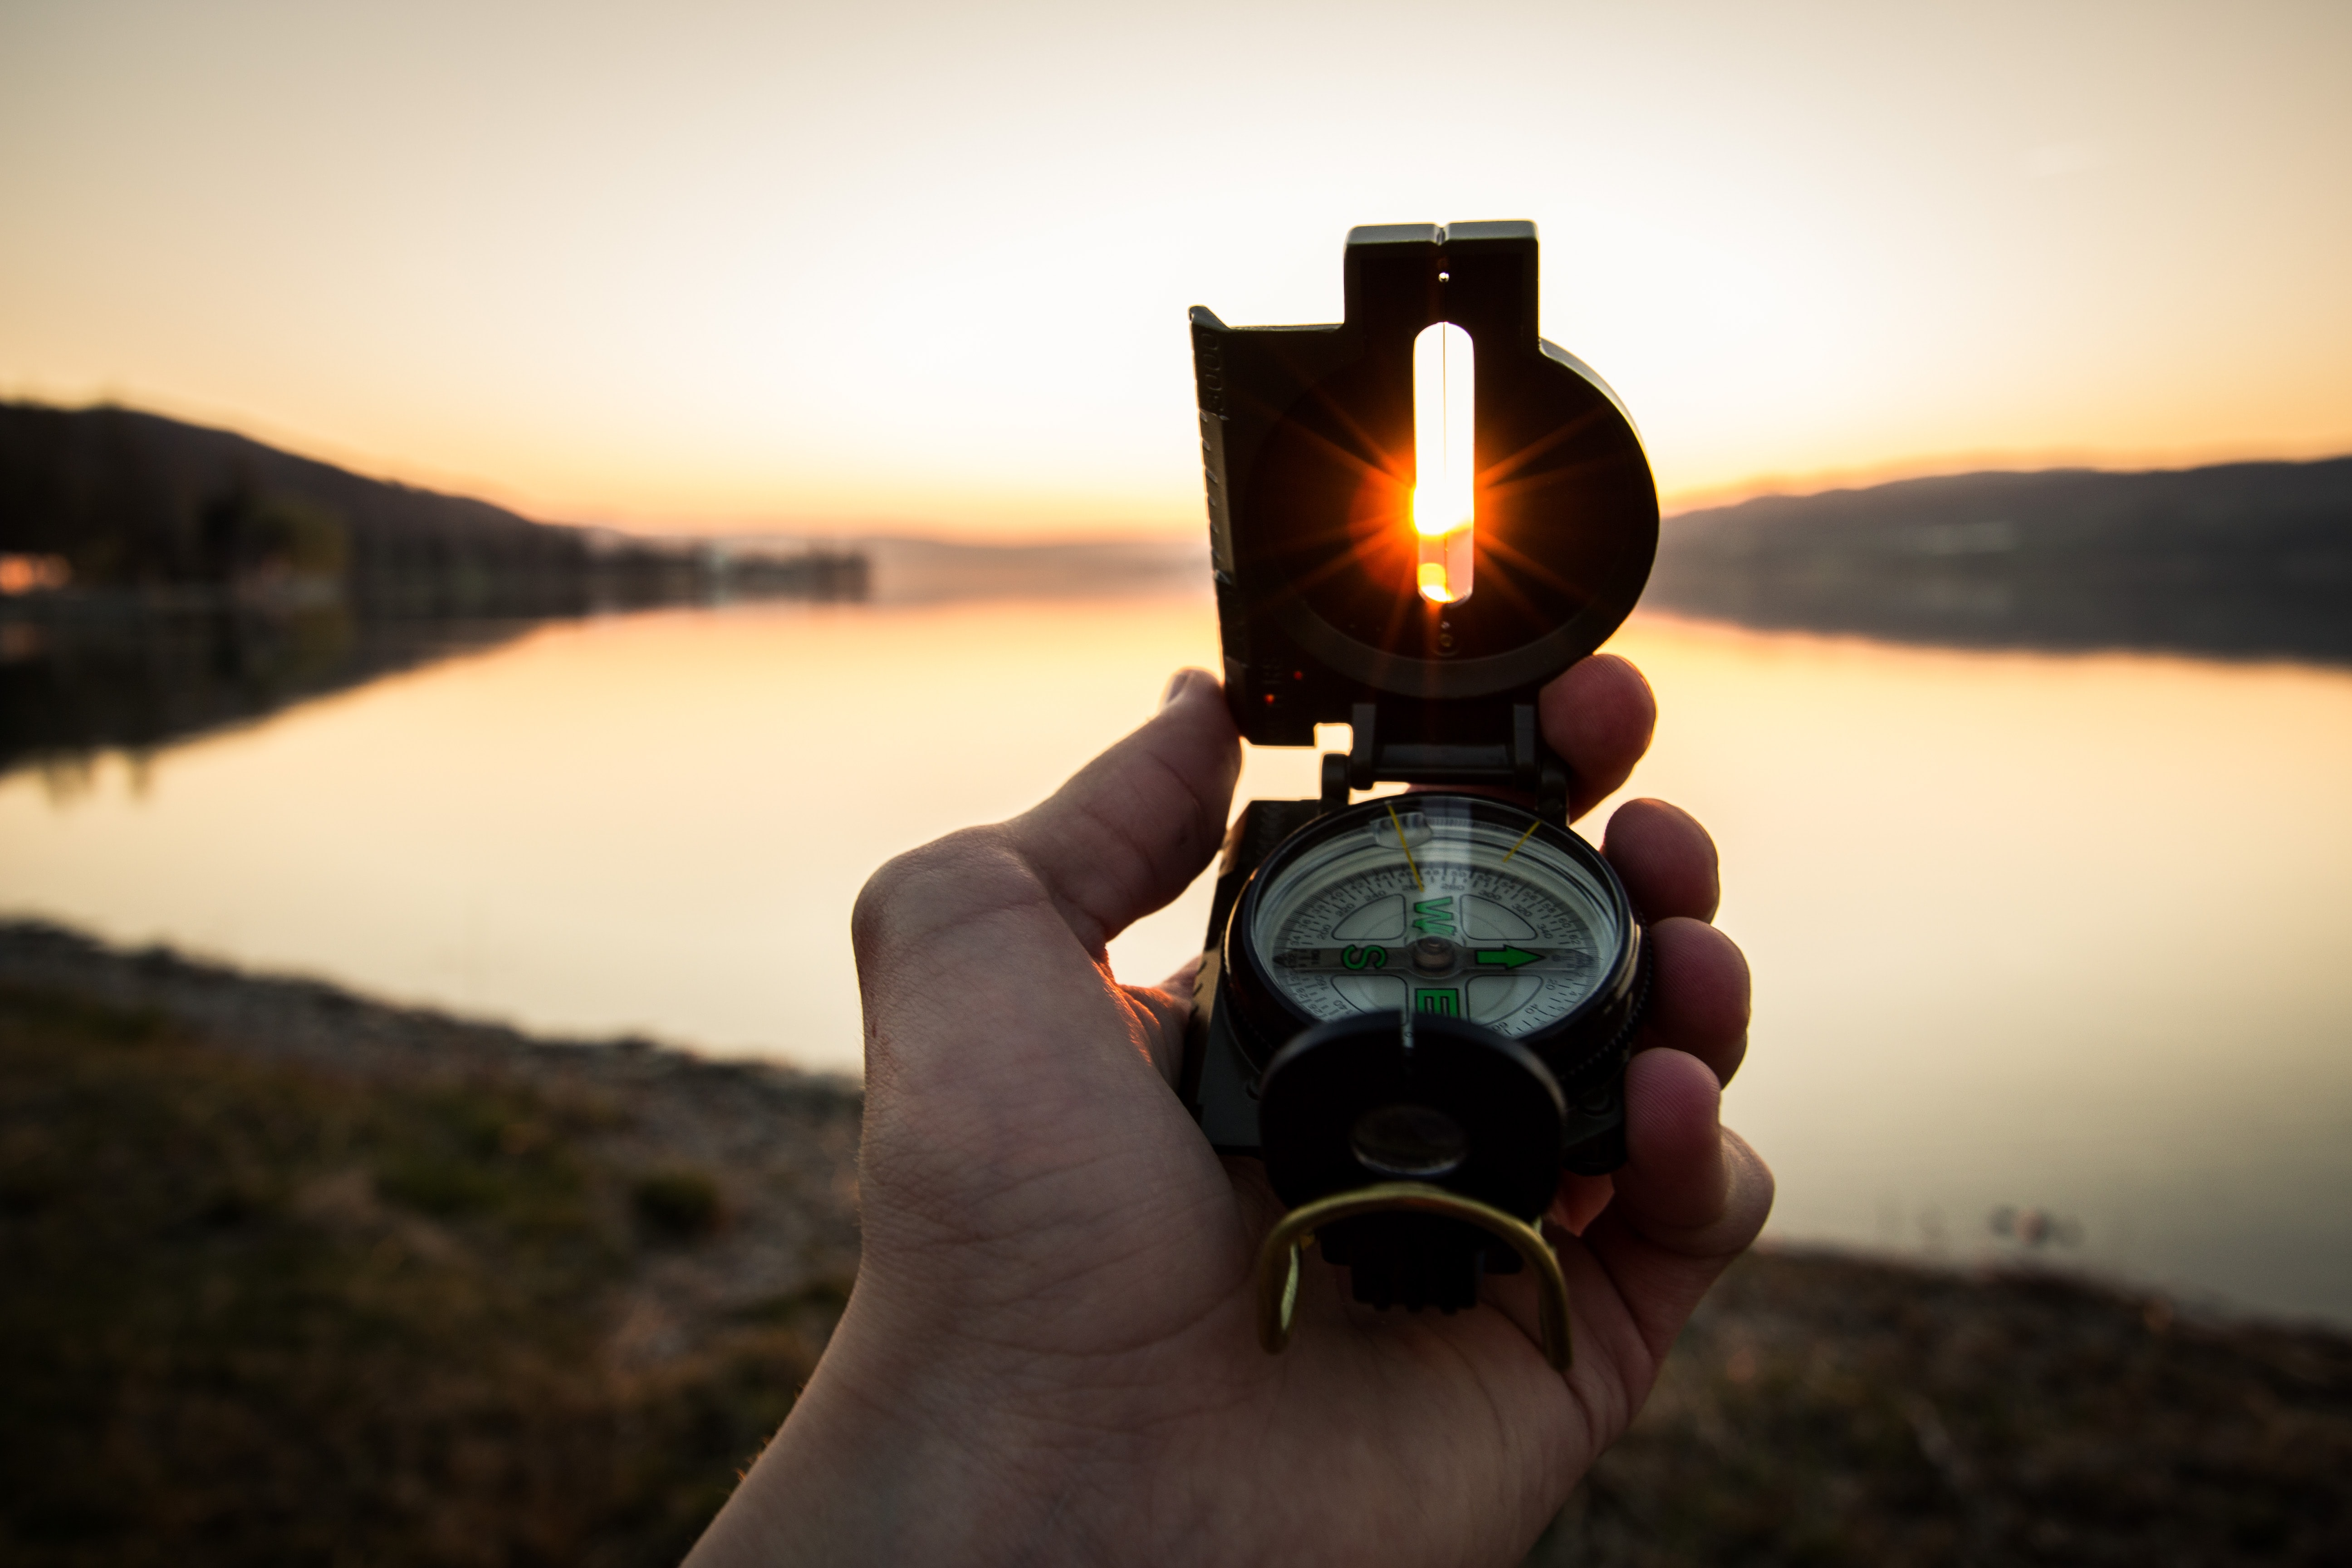 Image - A compass held in hand, facing a sun rise